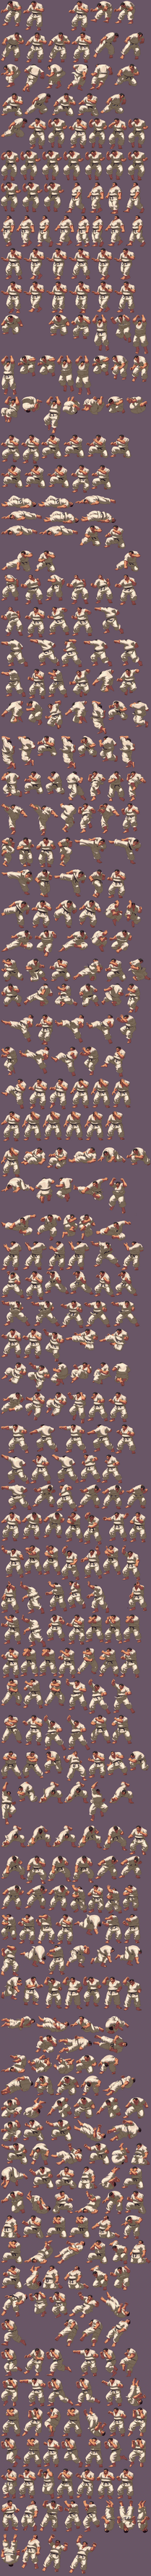 Takuma KoF XIII Sprite Sheet by SouthtownExpress